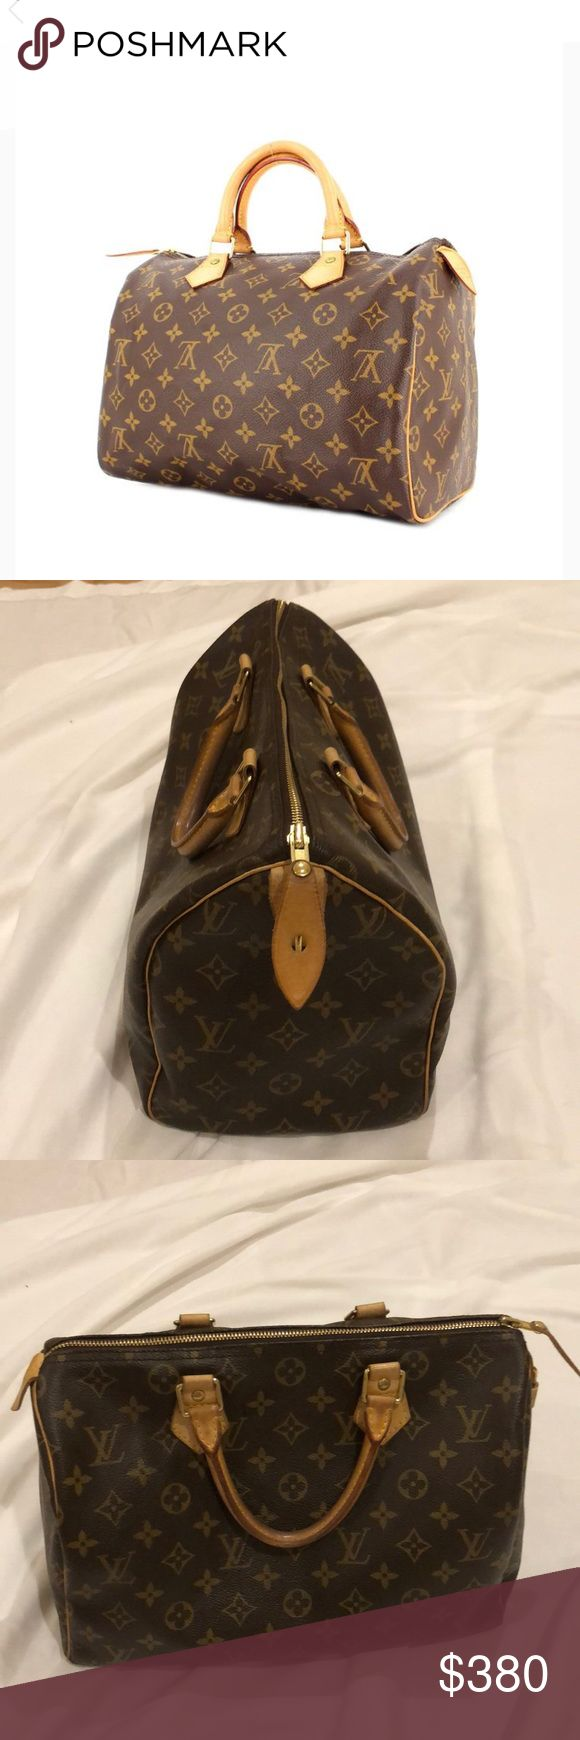 💯 AUTHENTIC LOUIS VUITTON SPEEDY BAG 💯 AUTHENTIC LOUIS VUITTON SPEEDY BAG. NO STAINS. NO RIPS OR SCRATCHES. HANDLES DARKEN AS LOUIES TYPICALLY DO! KEY MISSING BUT LOCK ATTACHED! Louis Vuitton Bags